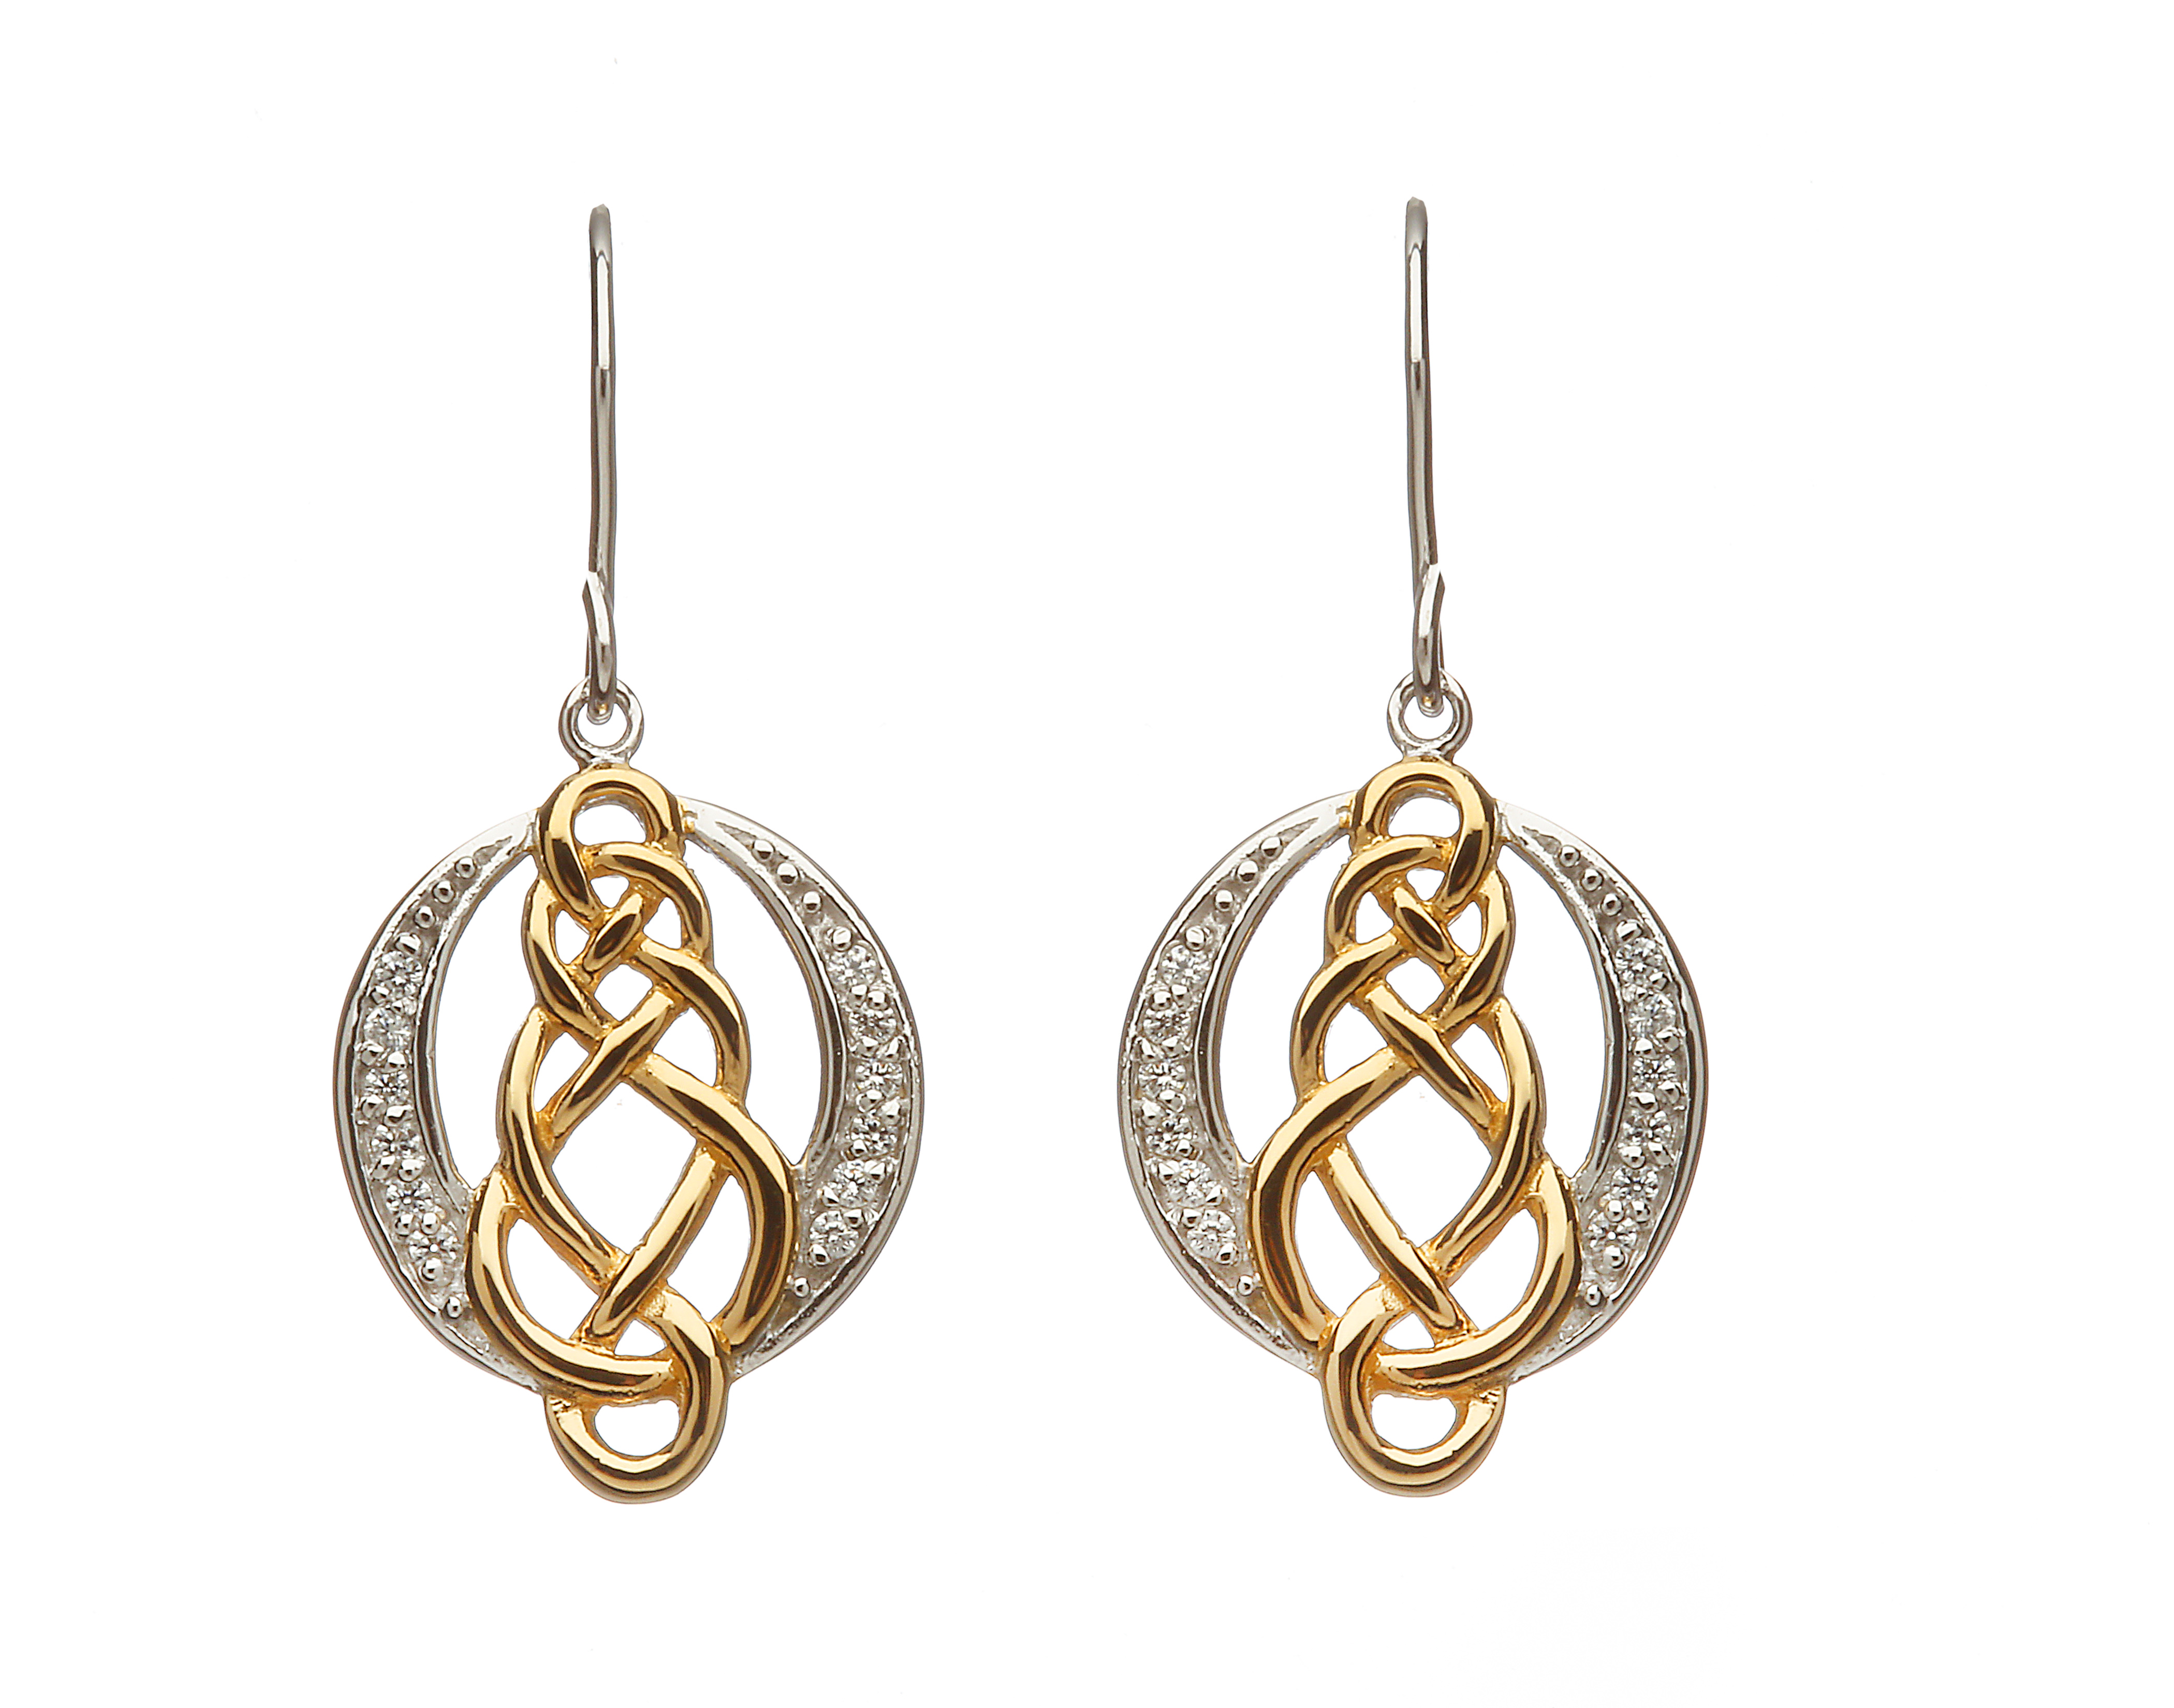 ad6e2d1b4 Sterling silver Celtic design lever back earrings with cubic zirconia and yellow  gold accents - Celtic Designs Jewelry